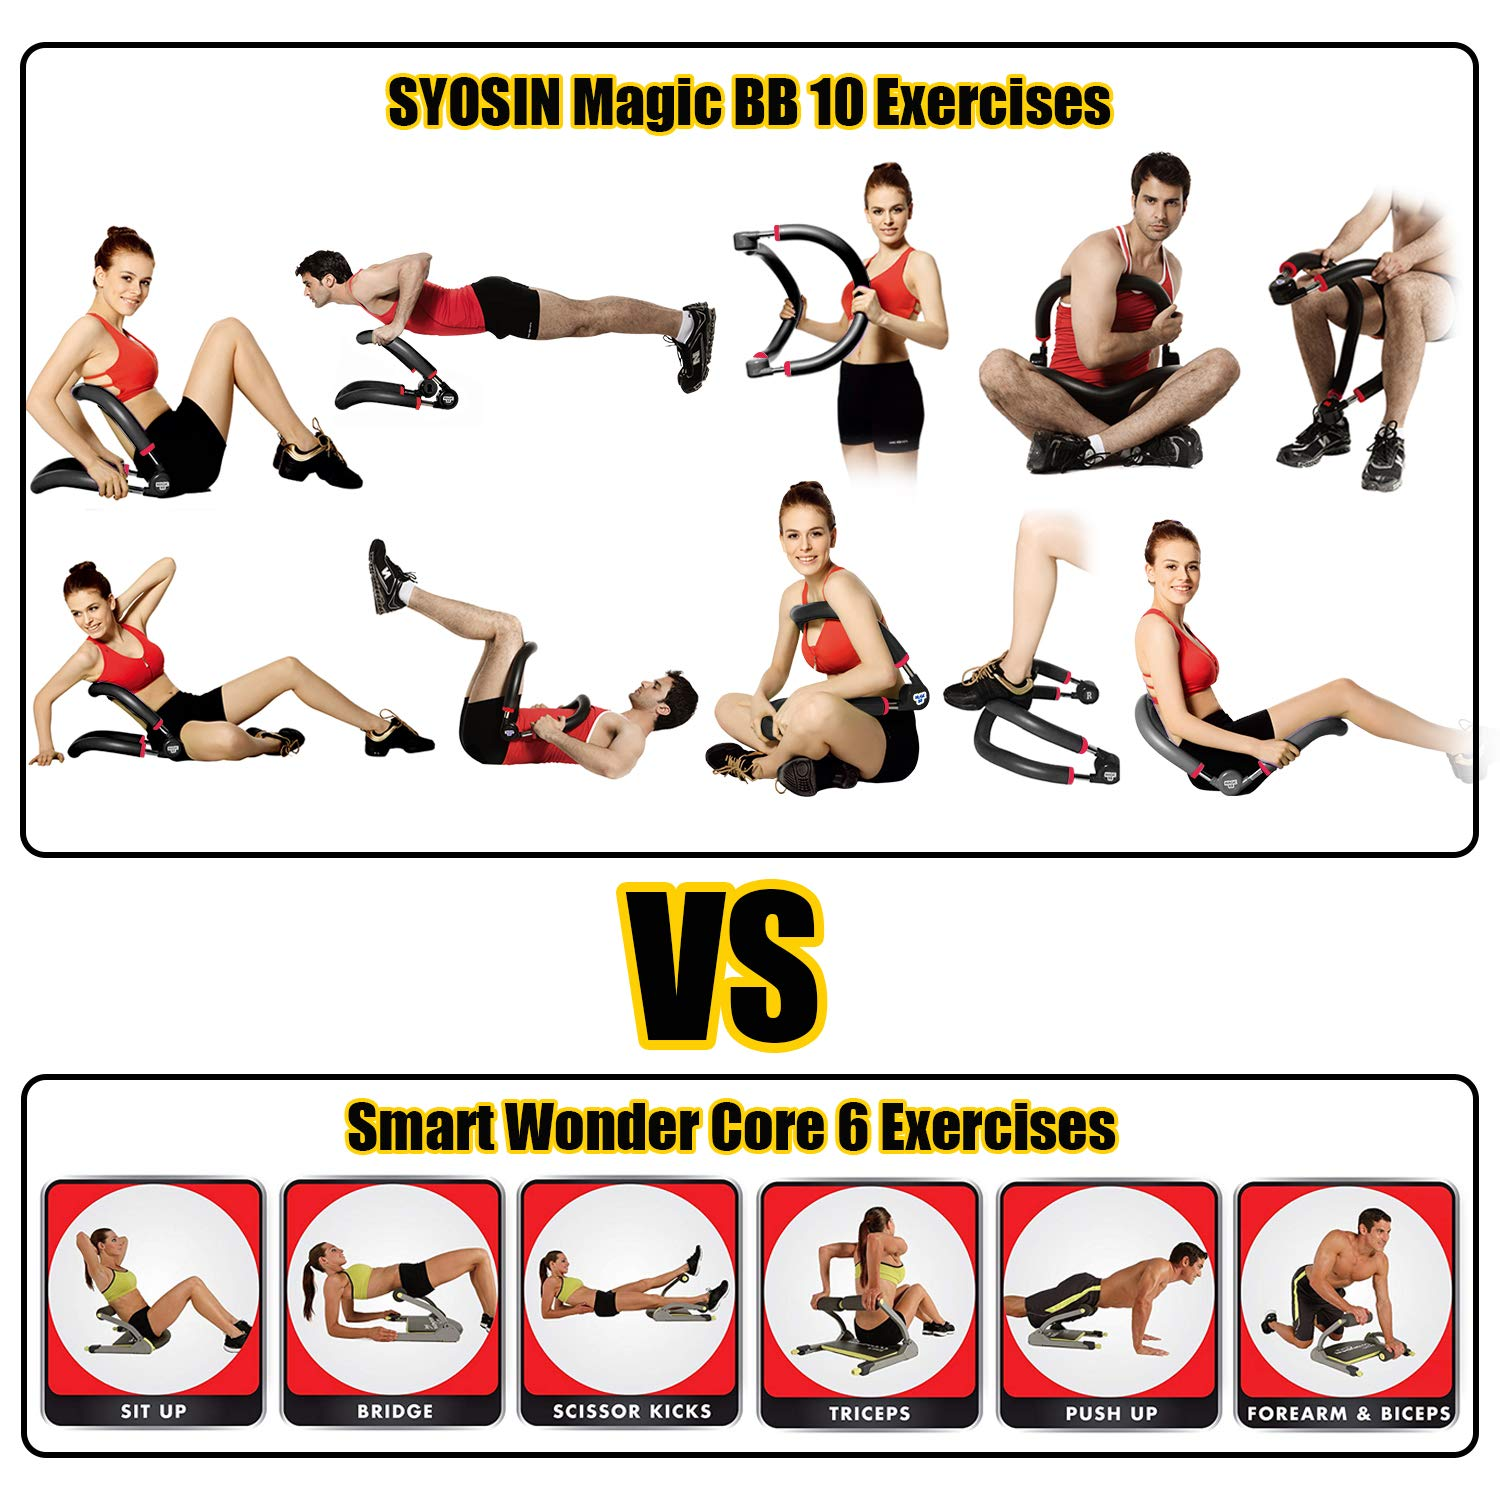 SYOSIN Abdominal Equipment for Full Range of Motion Ab Core Workouts,Home Gym Fitness Push Ups Intensity Adjustable Training Equipment Arm Leg Exercise